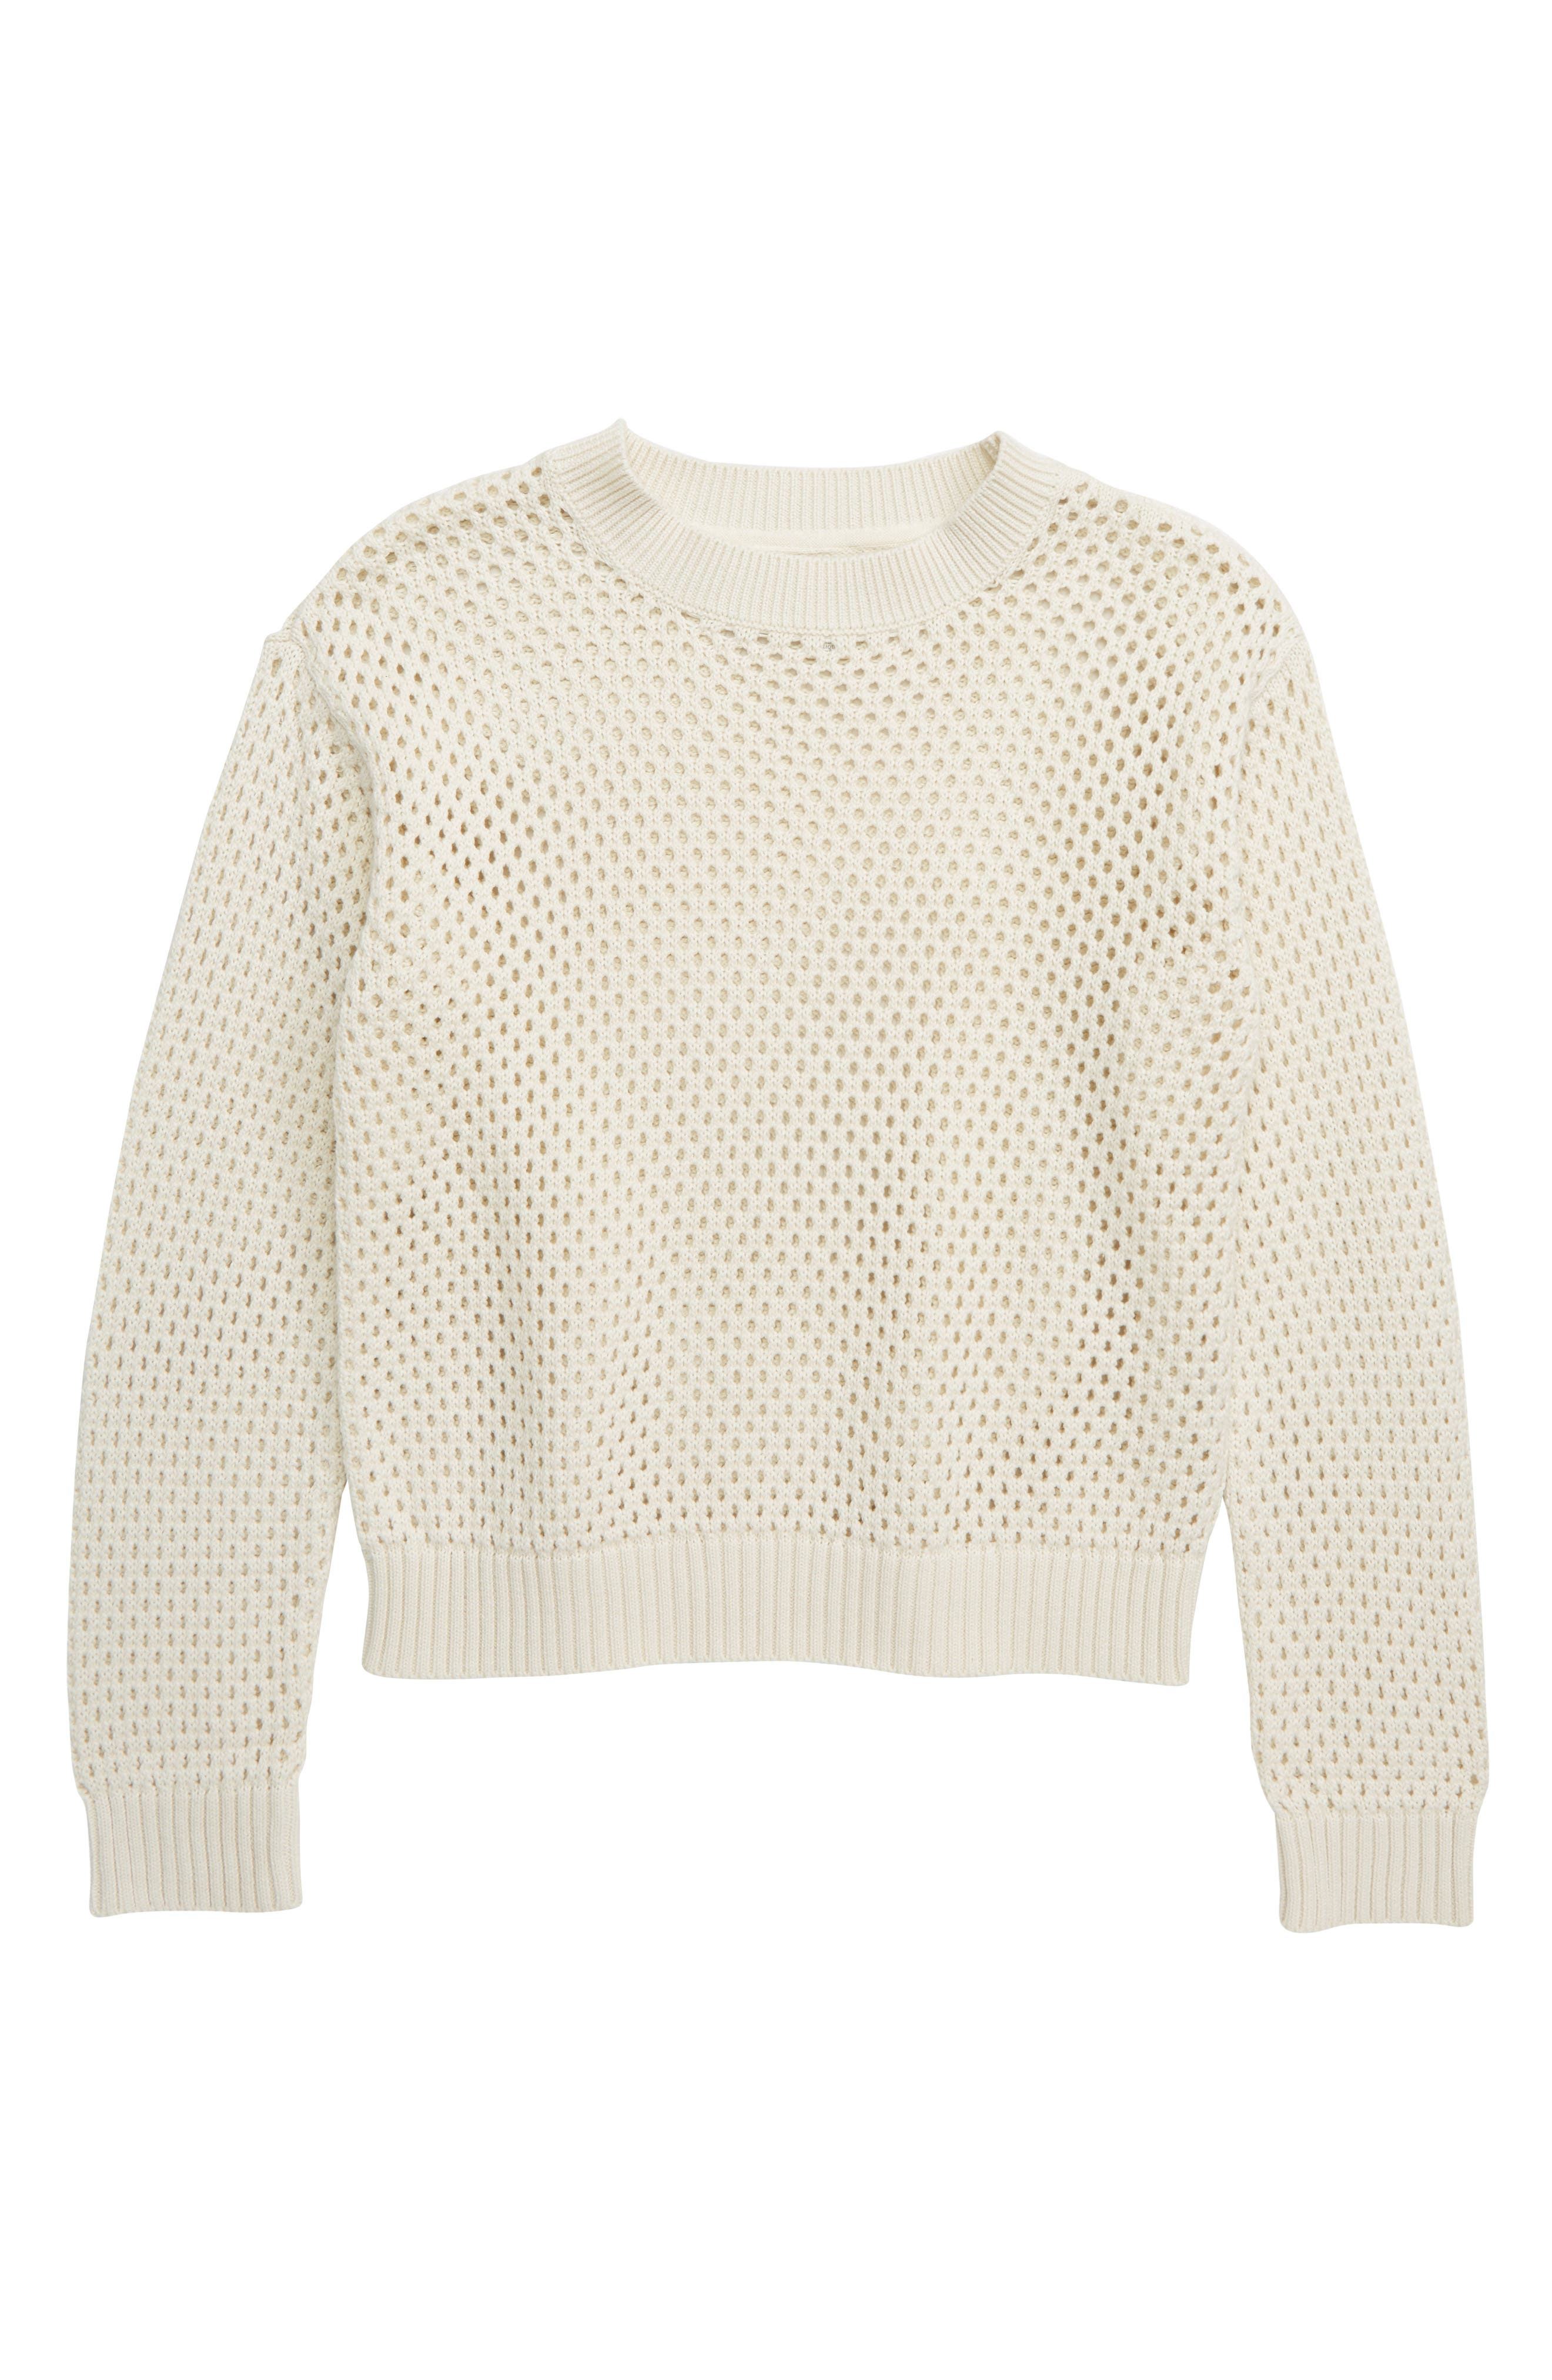 TREASURE & BOND,                             Pointelle Sweater,                             Main thumbnail 1, color,                             IVORY EGRET